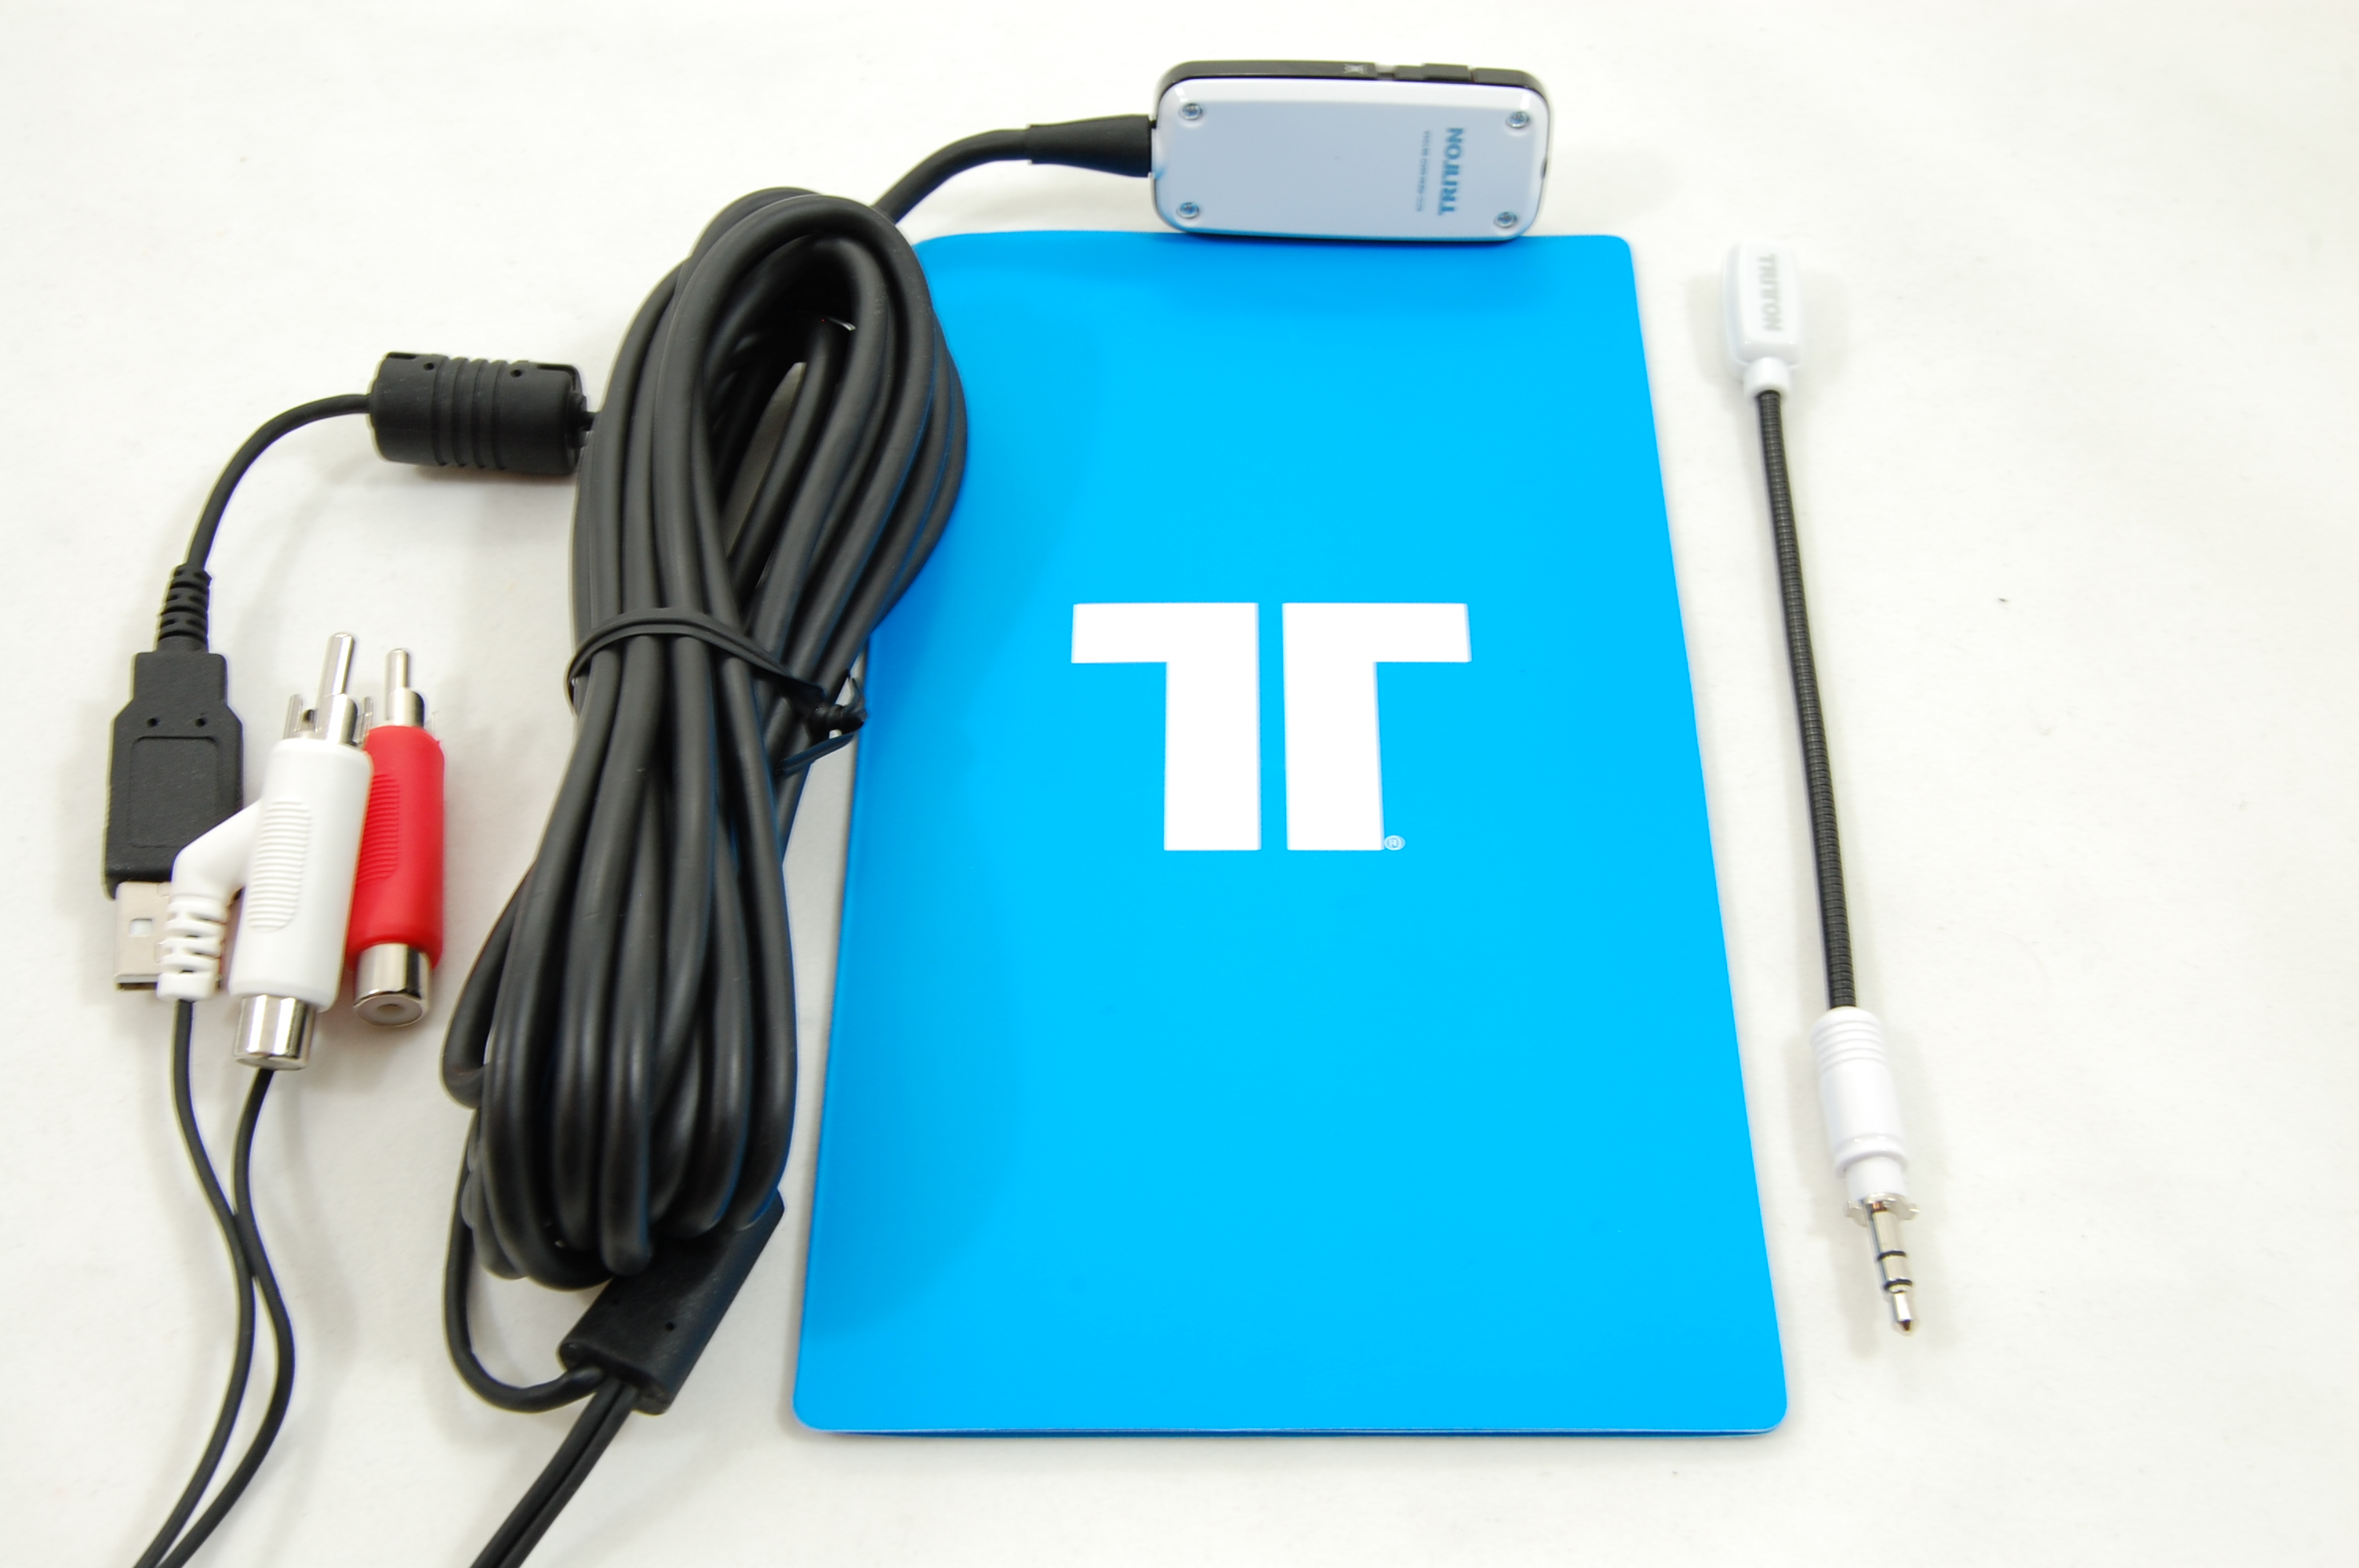 Tritton Kunai Accessories In The Box